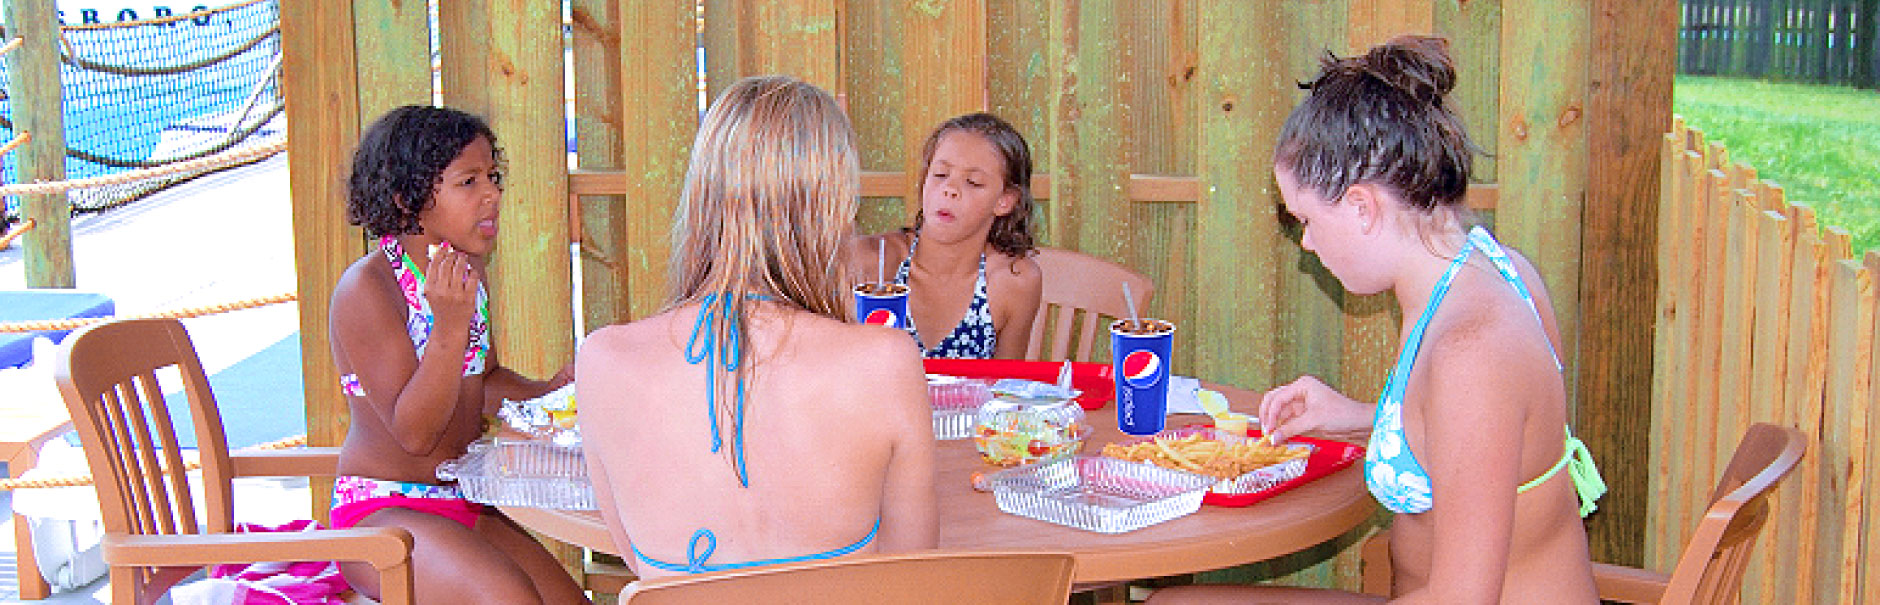 Four teenage girls eating around a table in a cabana.